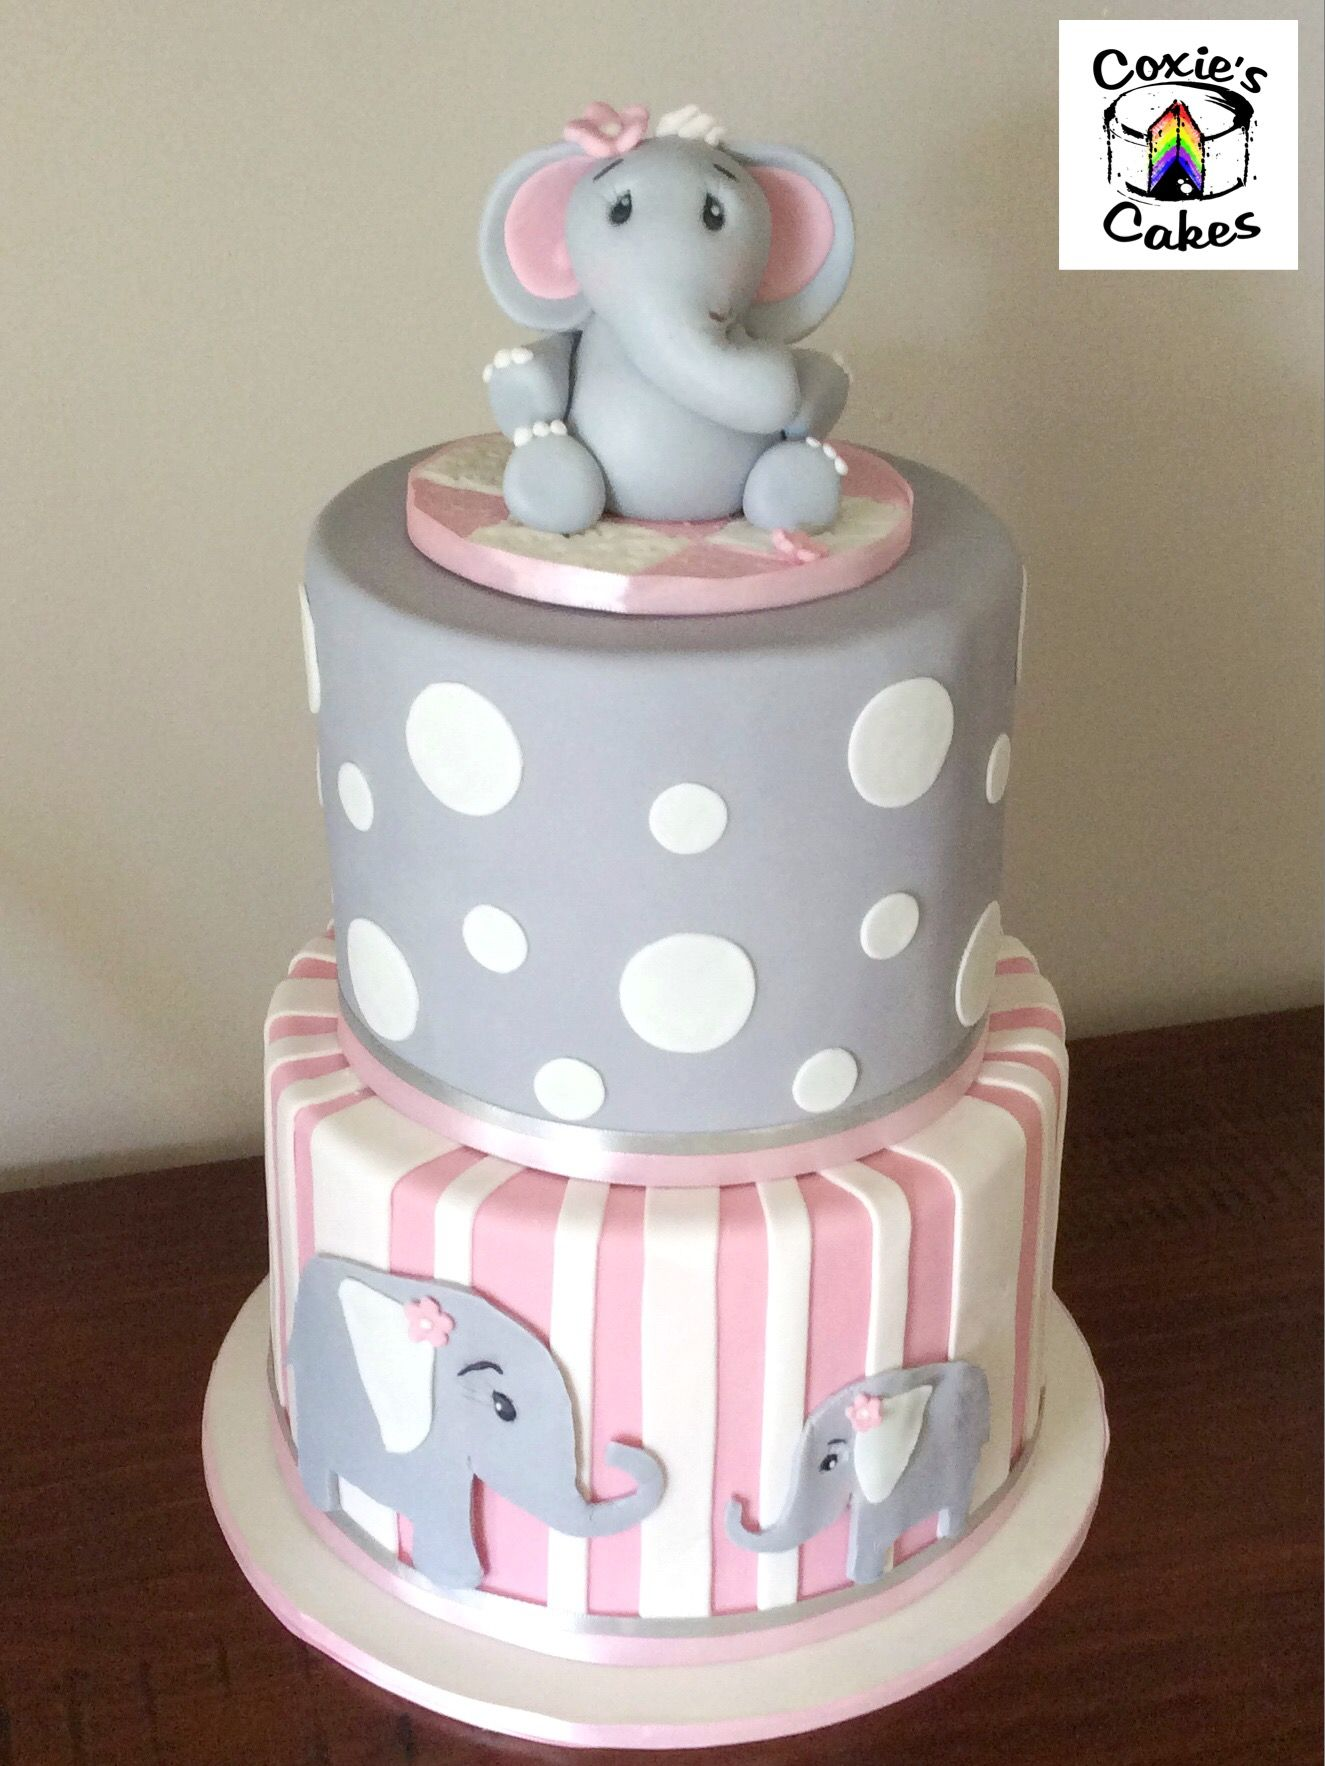 20th Birthday Cake For Twins Boy And Girl